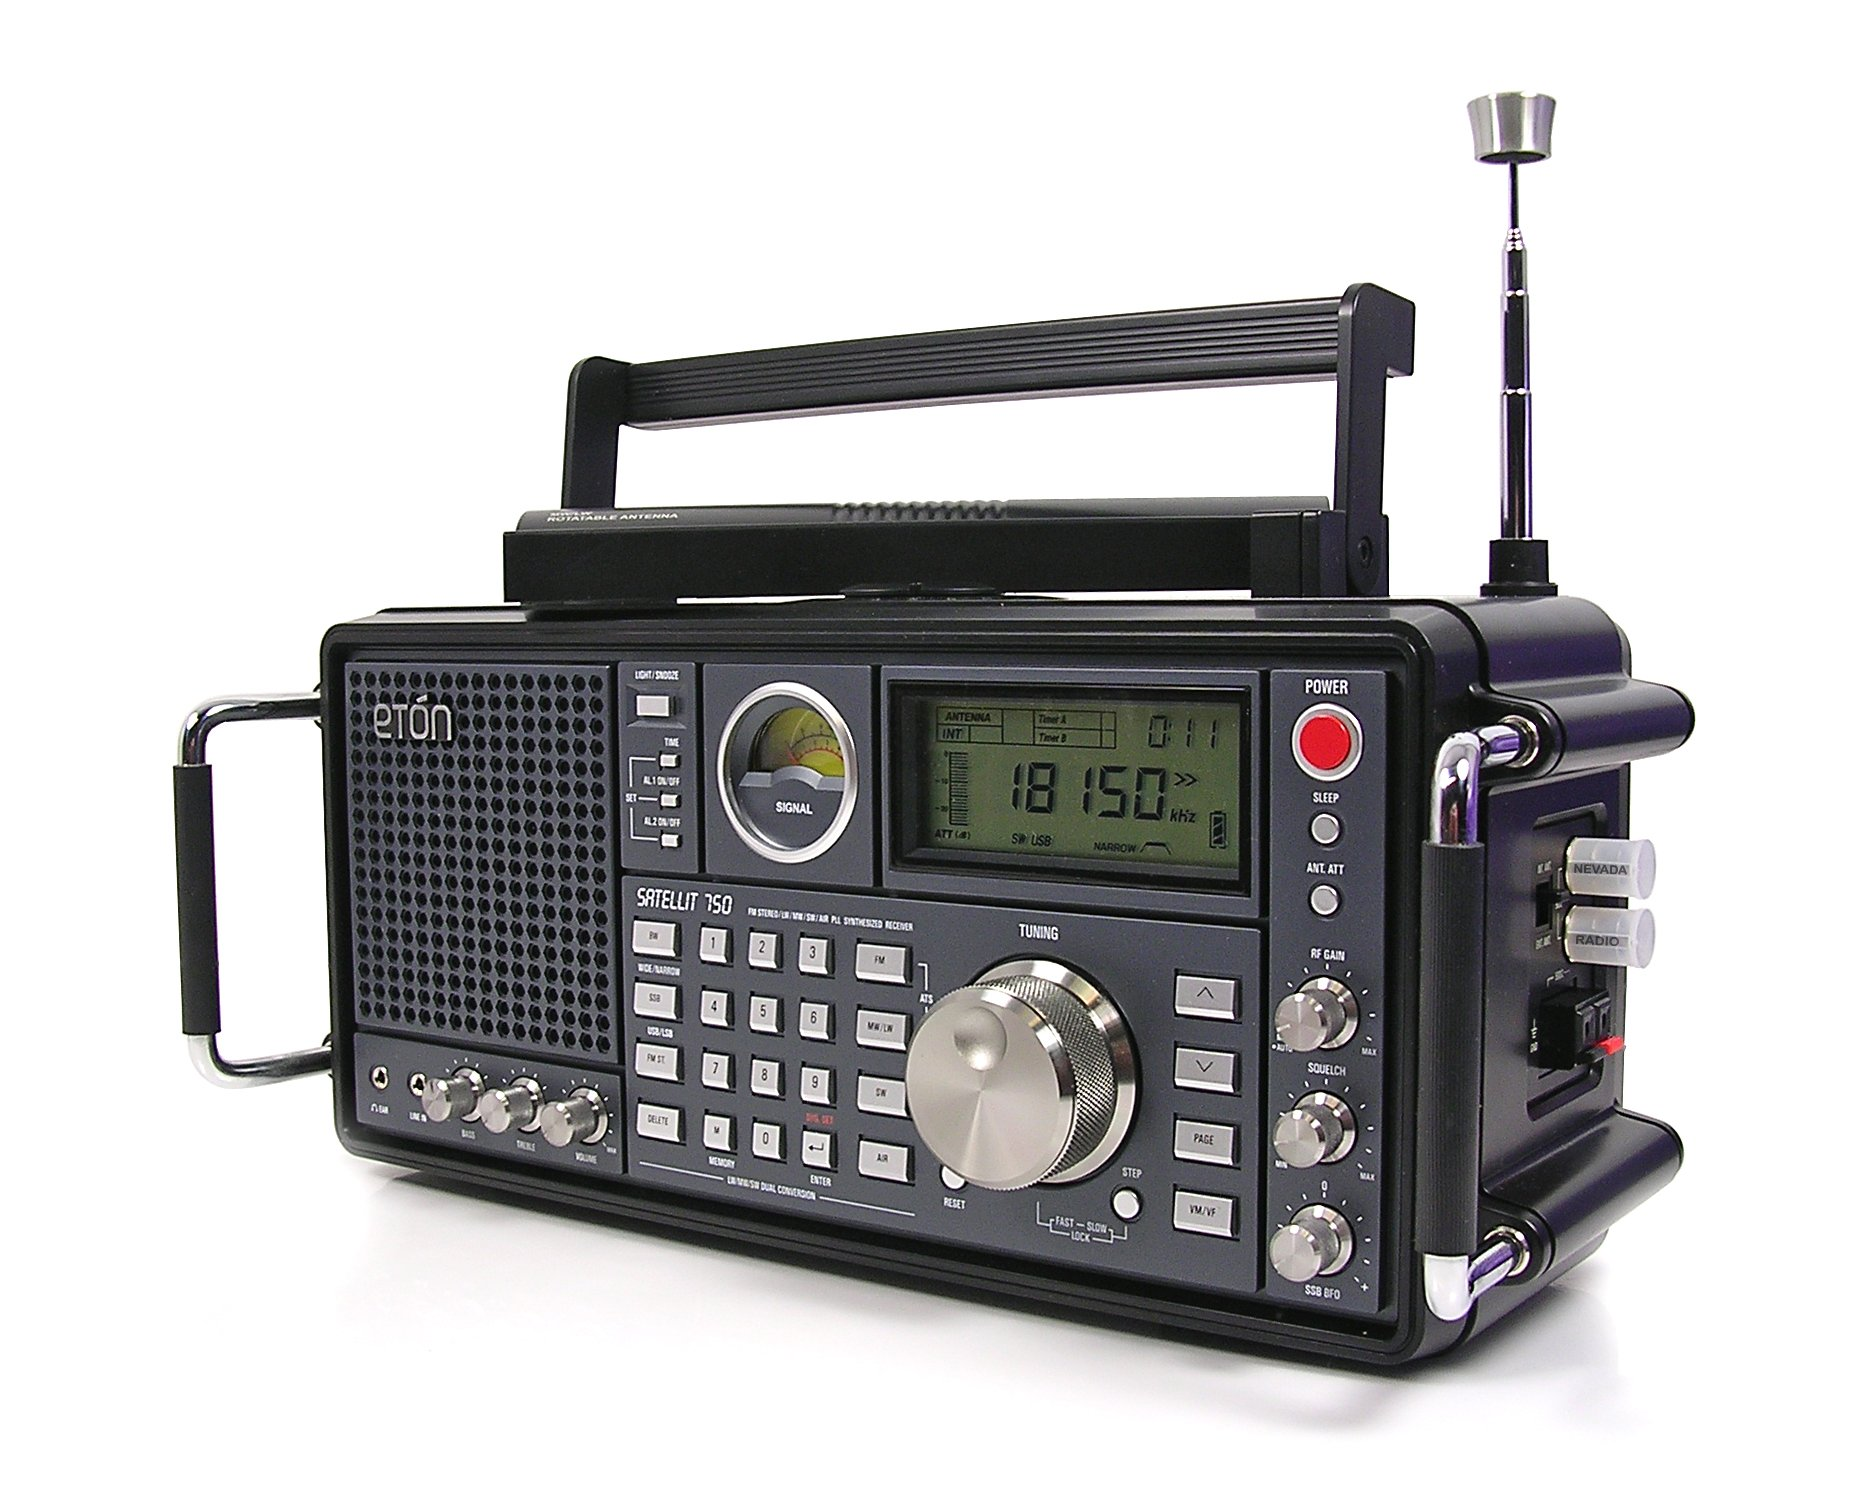 Eton Grundig Satellit 750 AM/FM Stereo - Receives ...